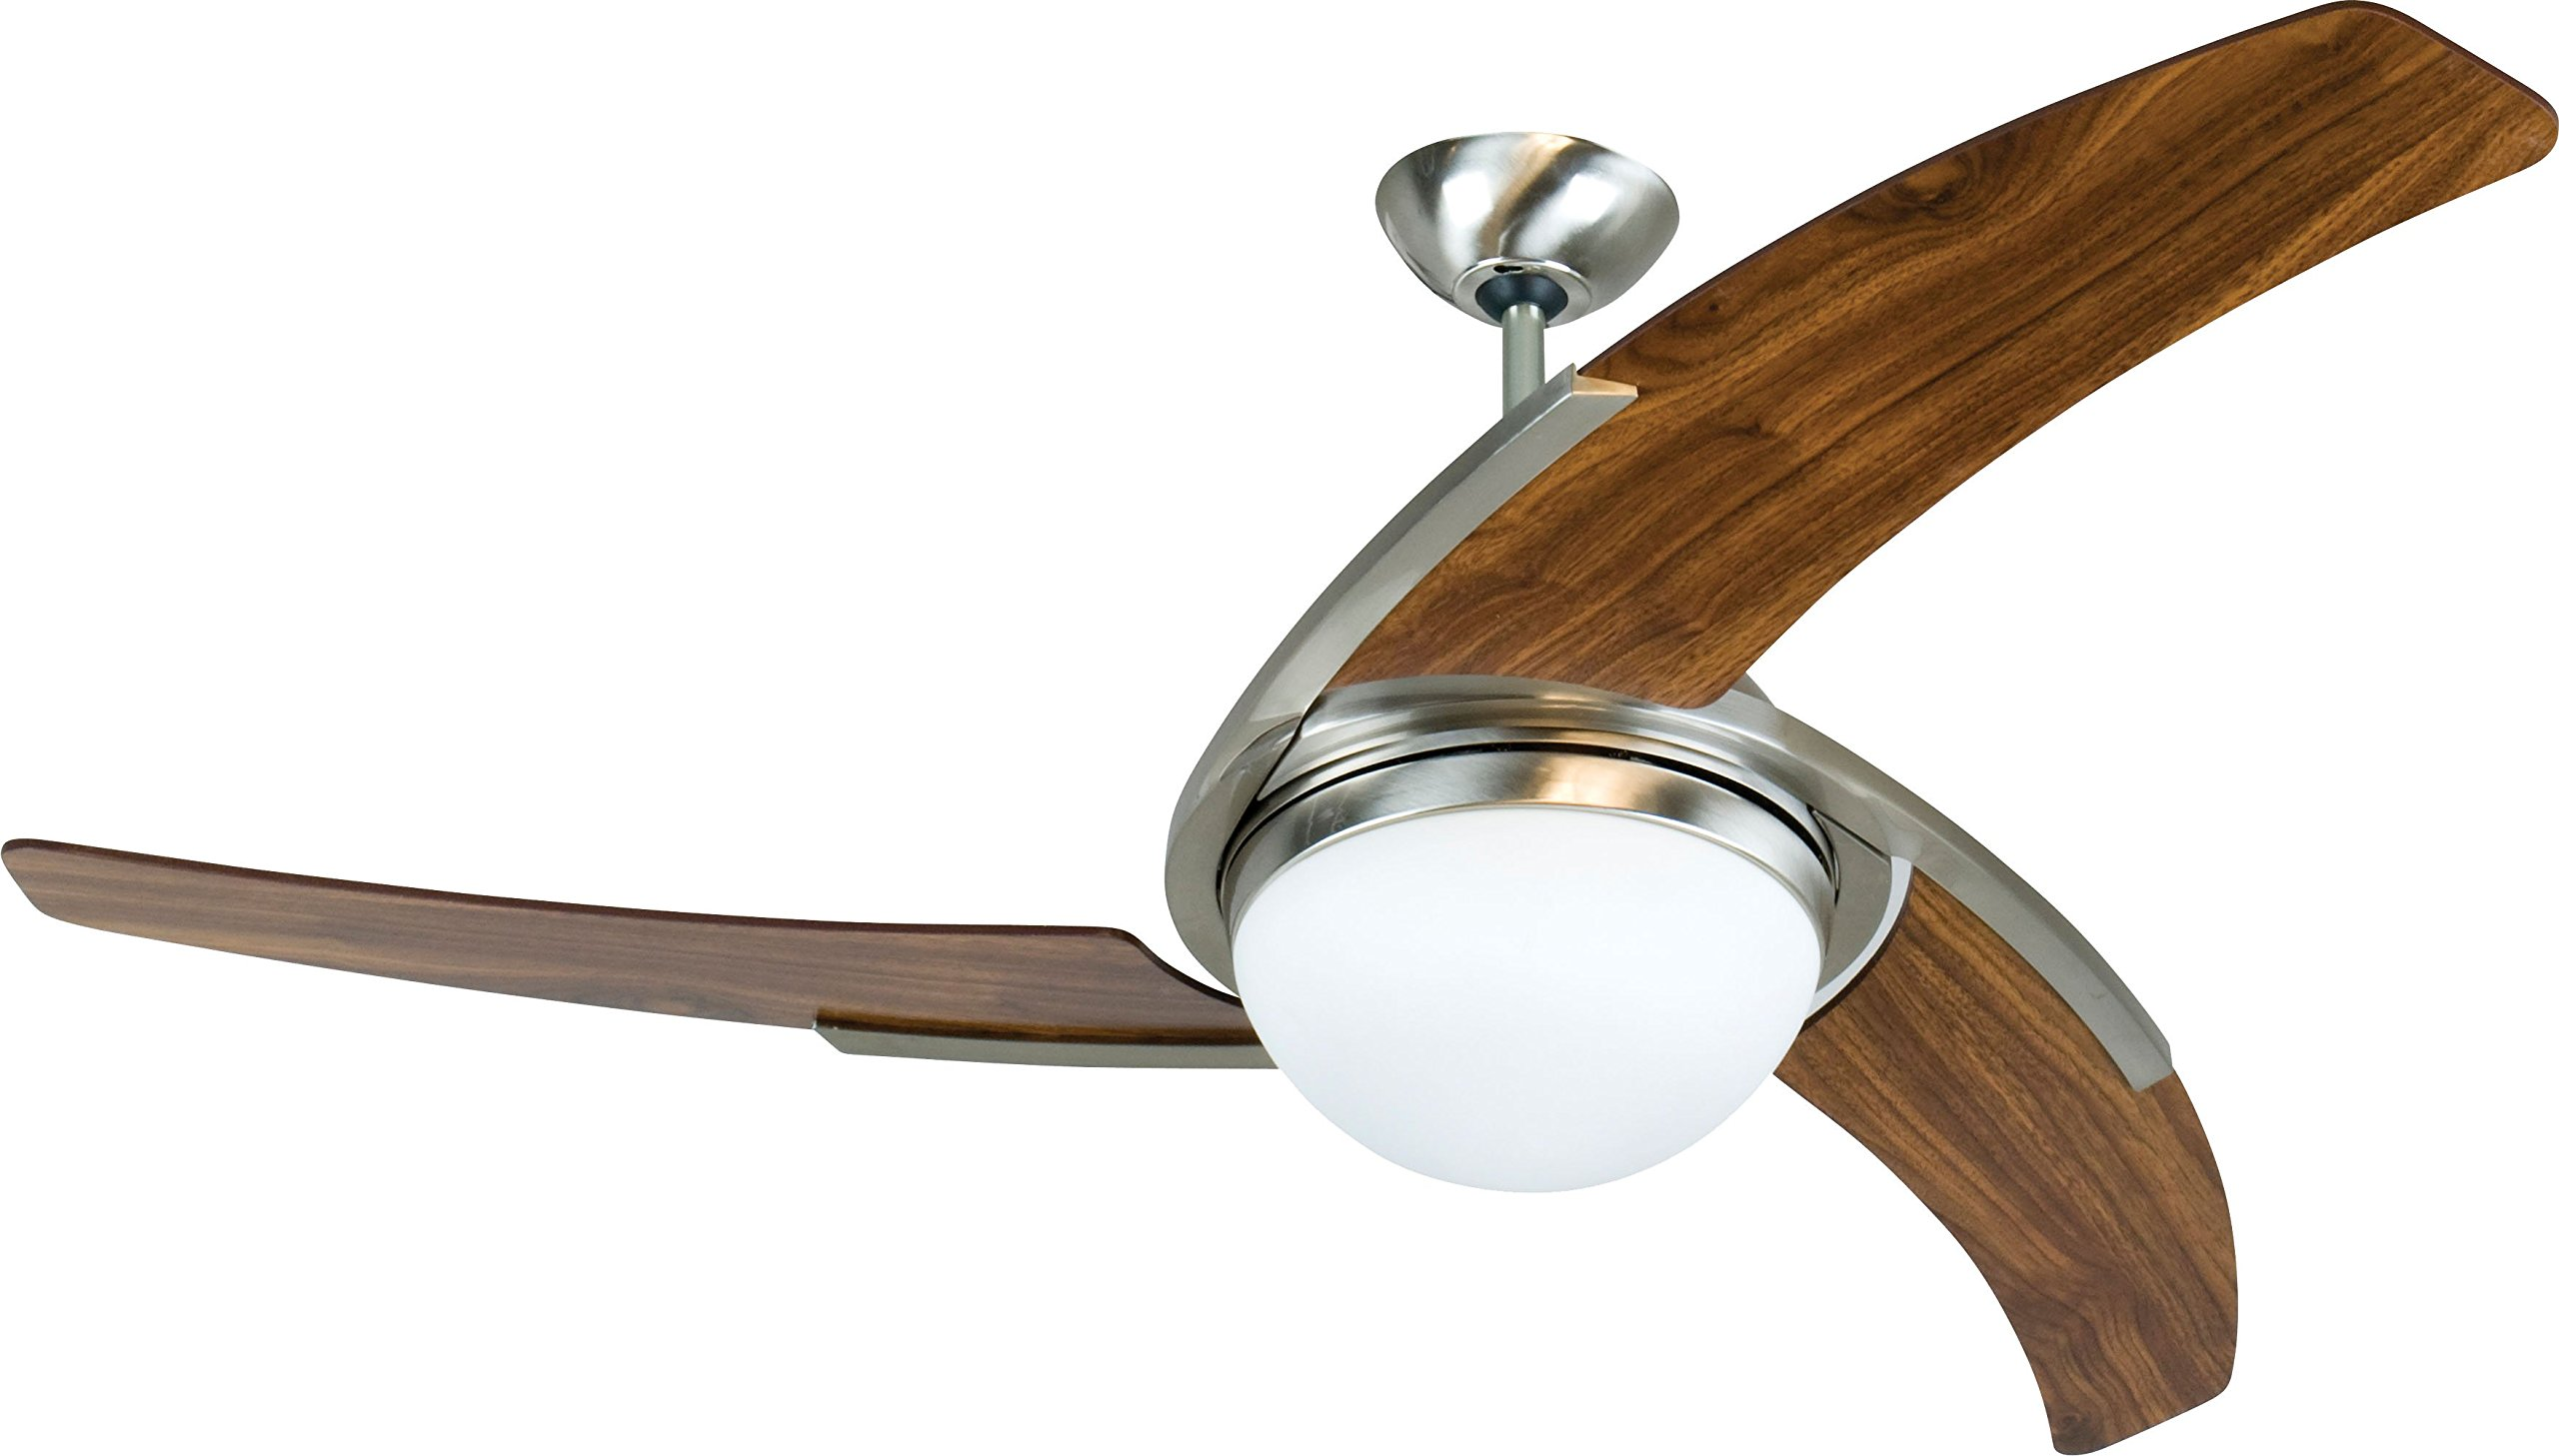 Craftmade JU54SSW3 Juna, 54'' Wooden Blade Stainless Steel Ceiling Fan with Remote and Light